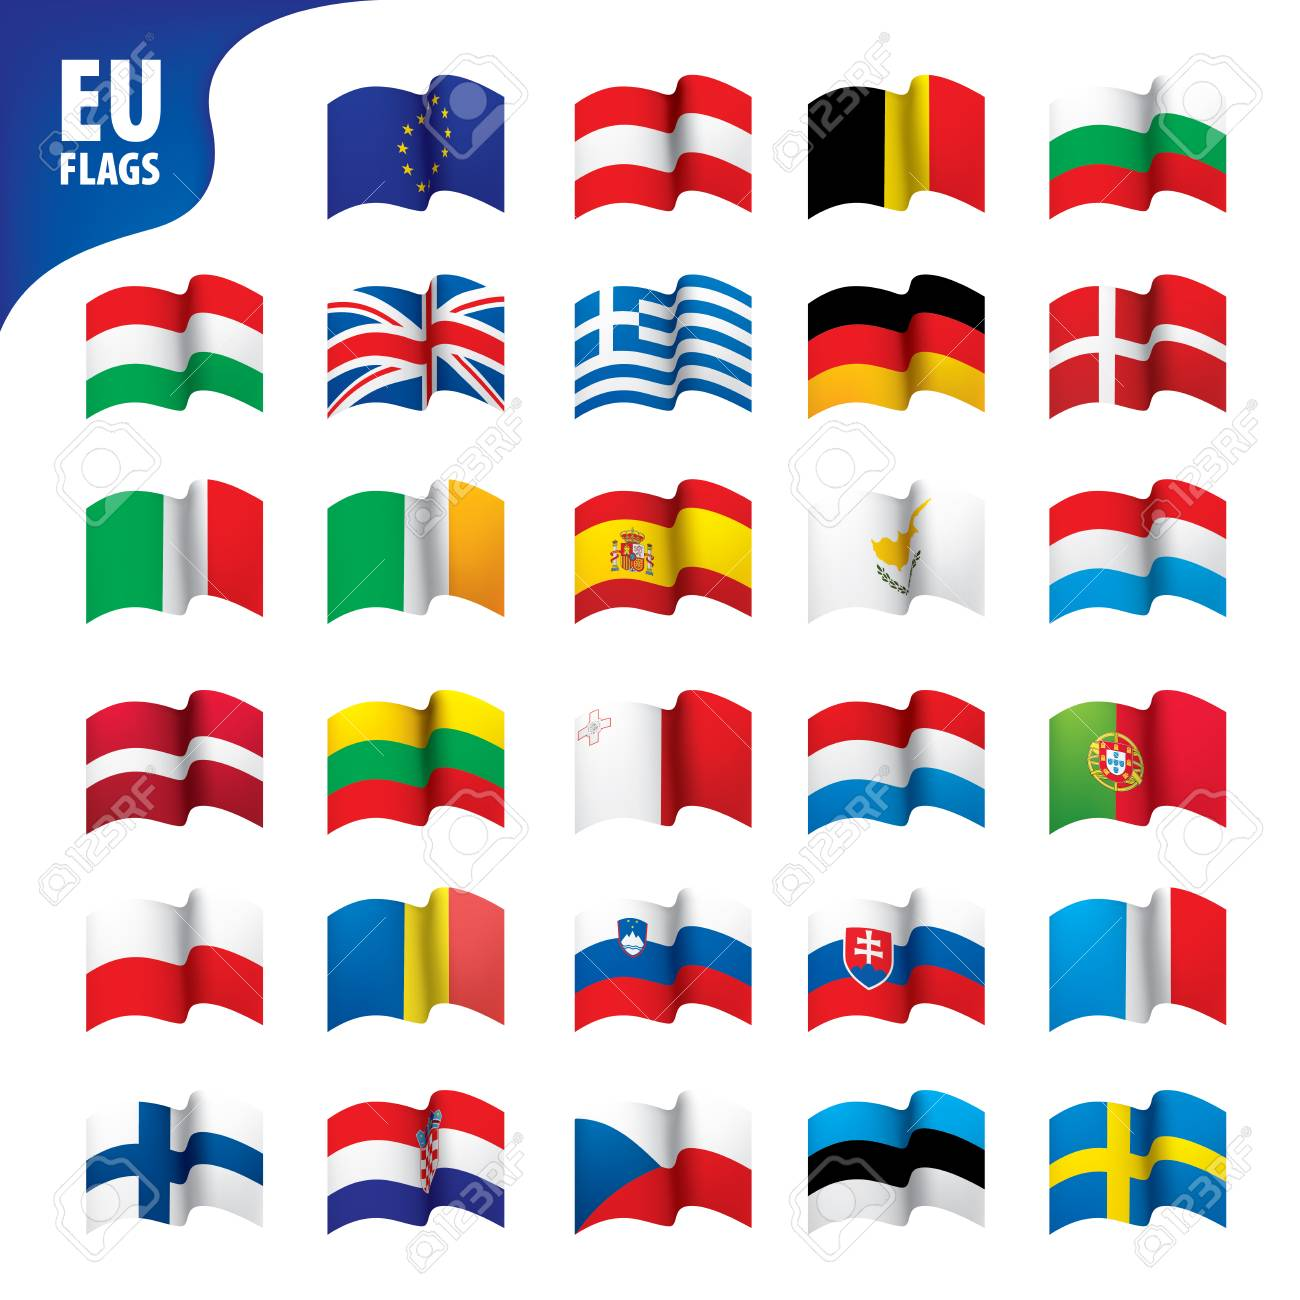 flags of the european union - 97440200